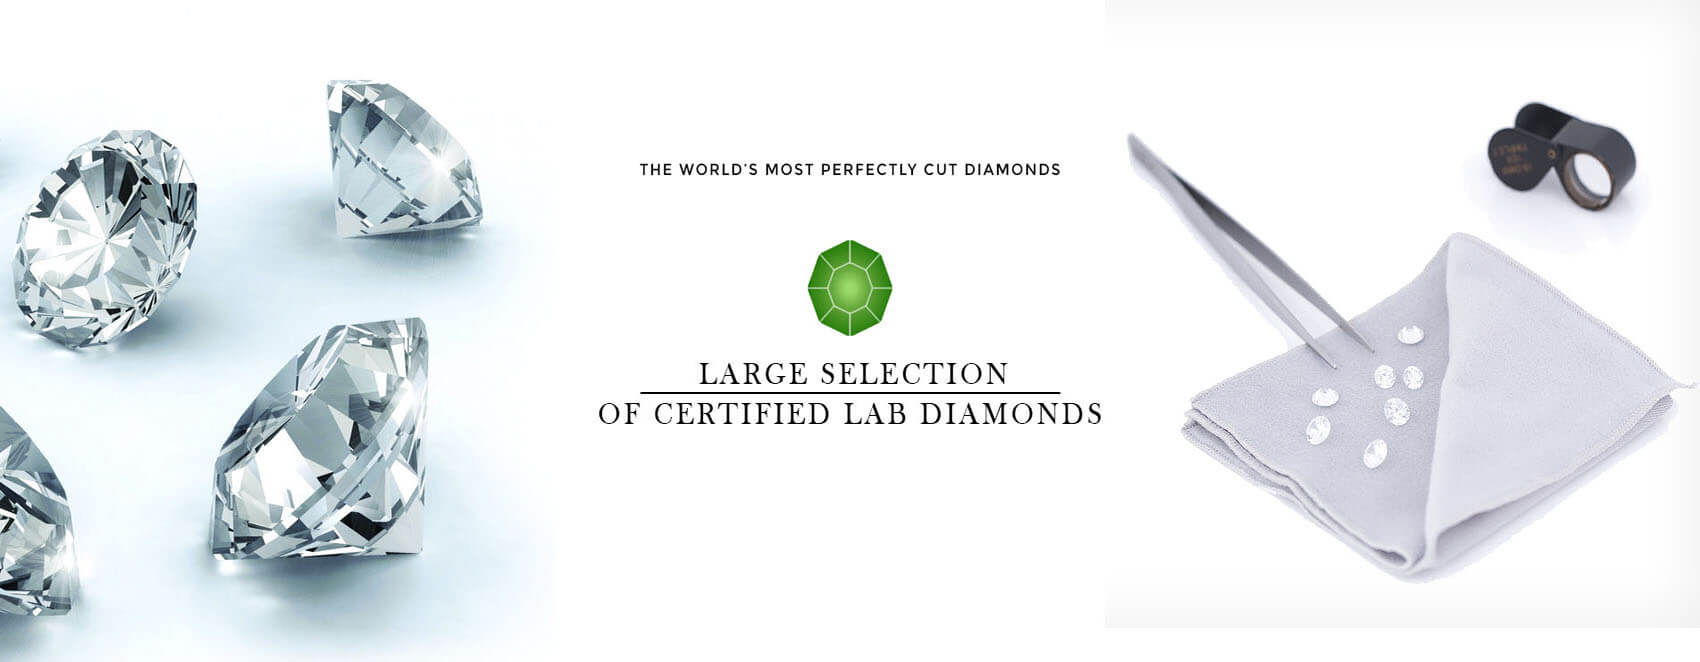 Large Selection of Certified Lab Diamonds